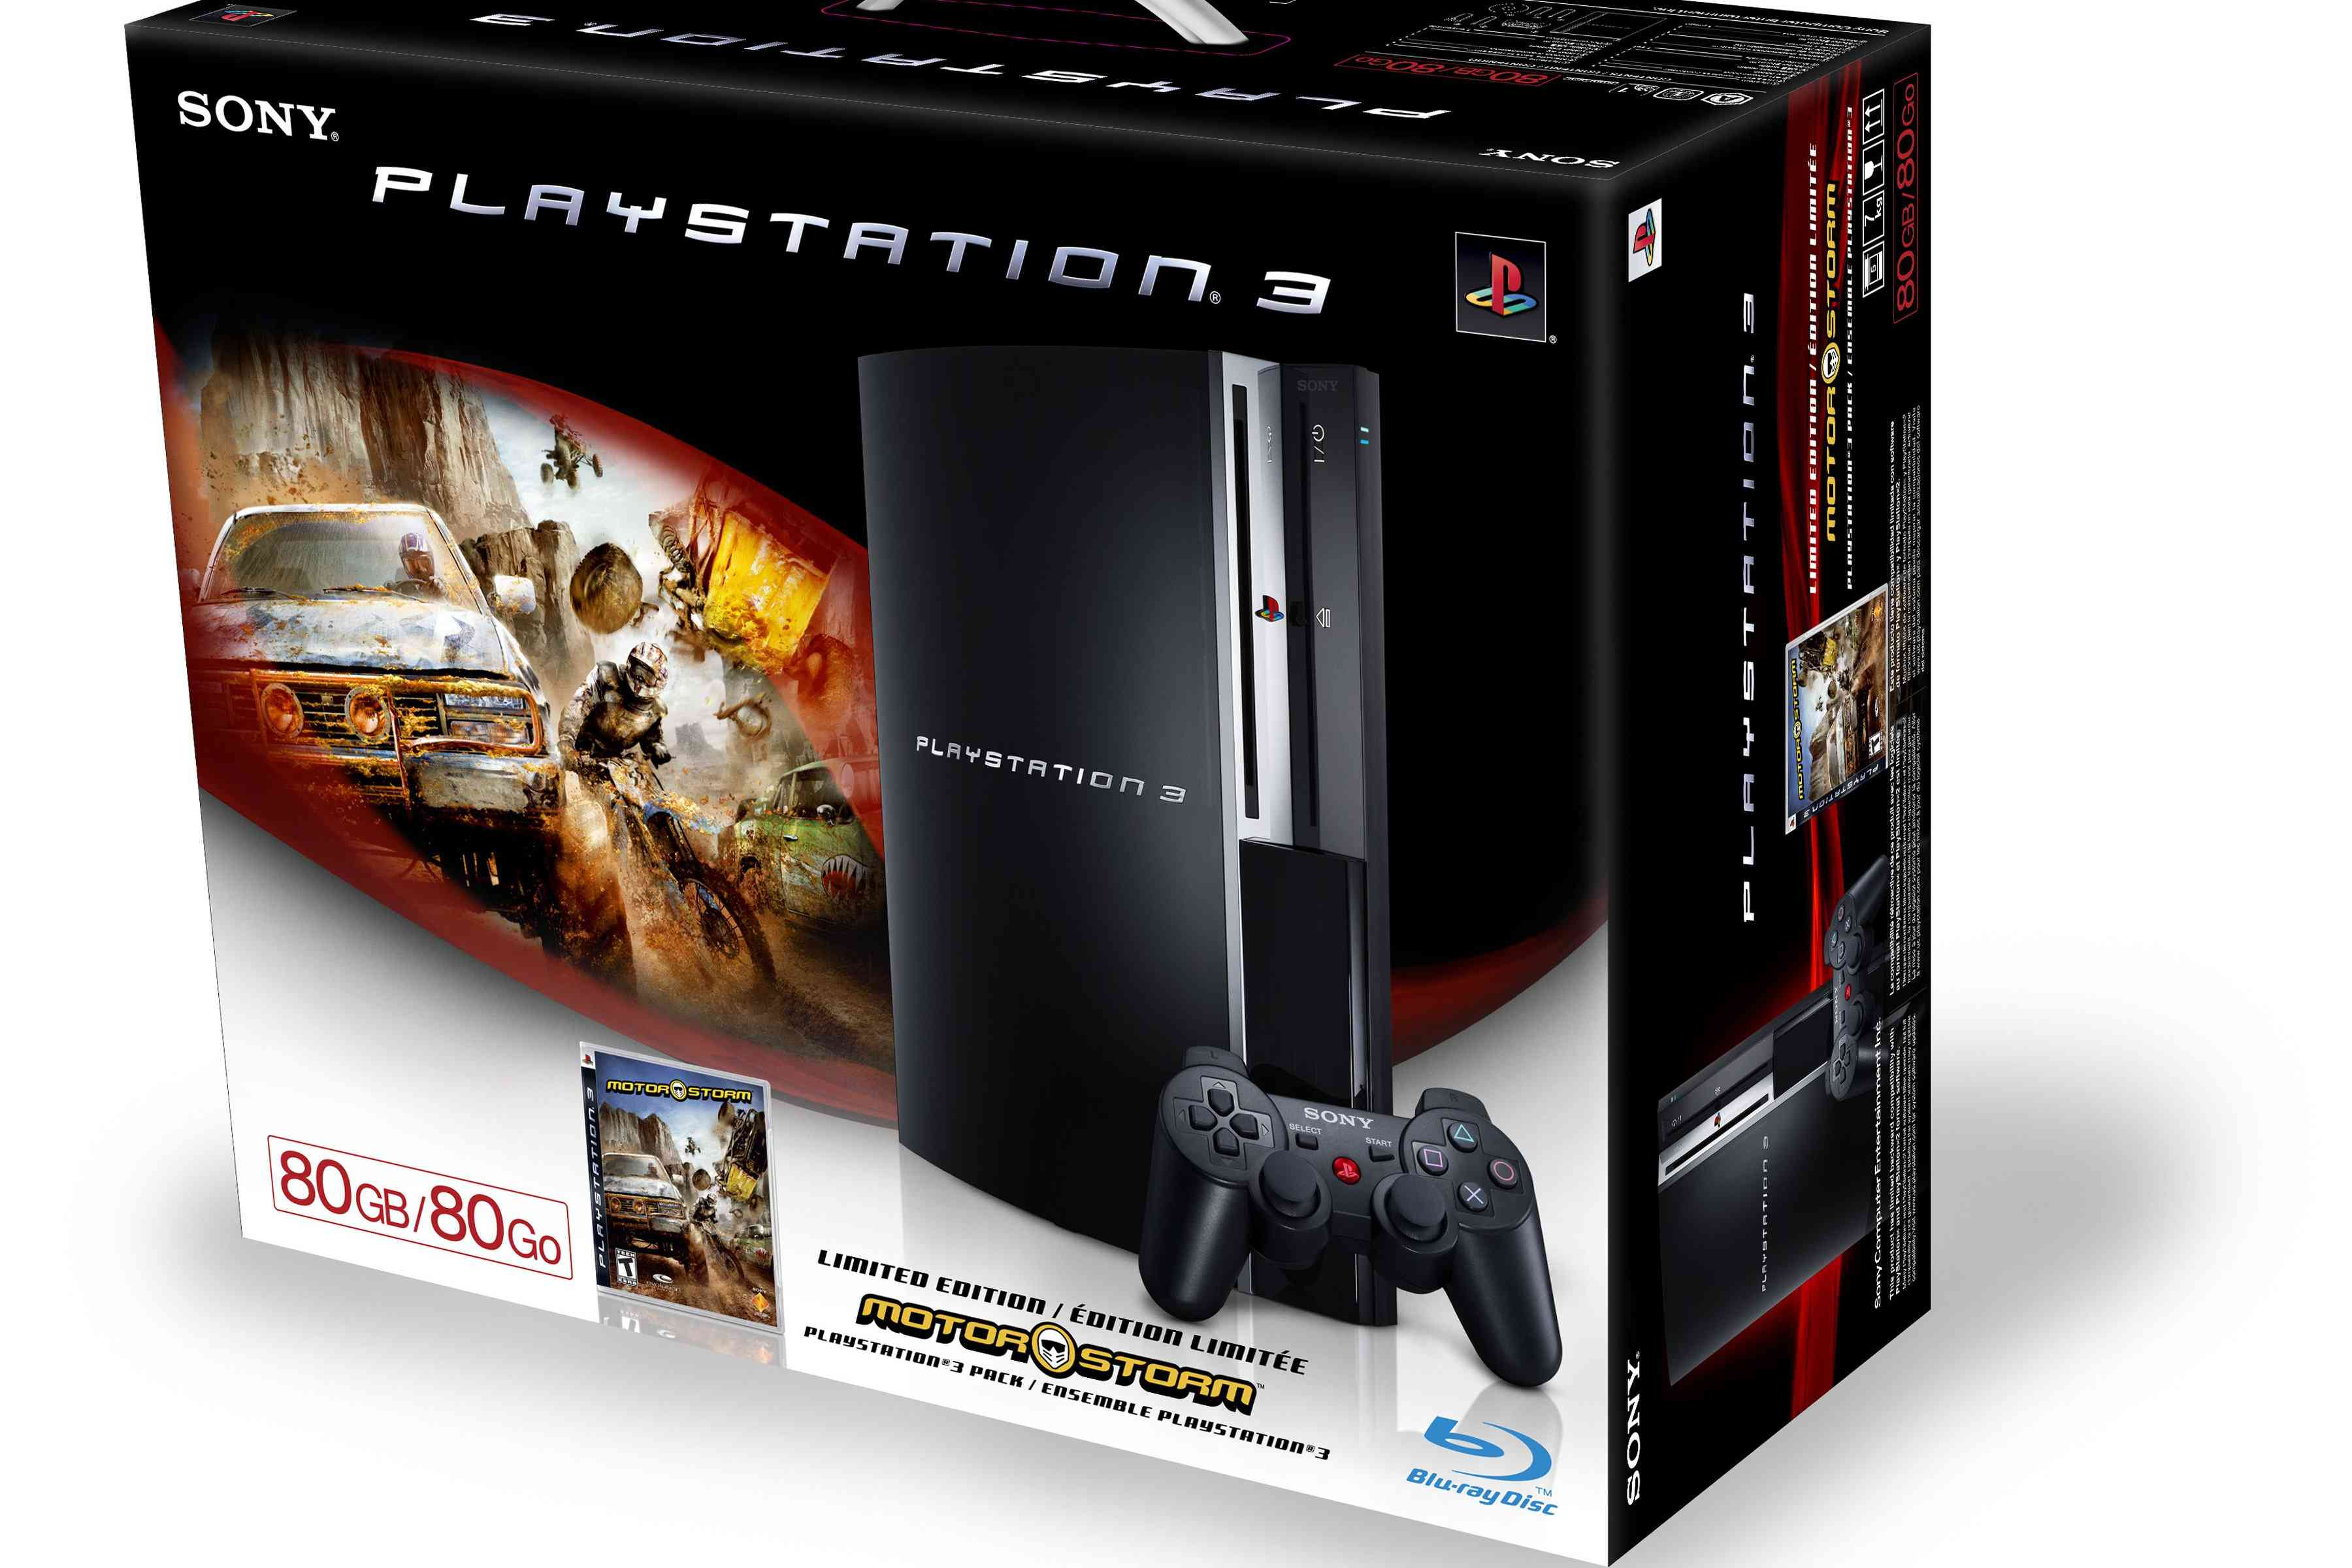 Specs And Details About The 80gb And 60gb Ps3